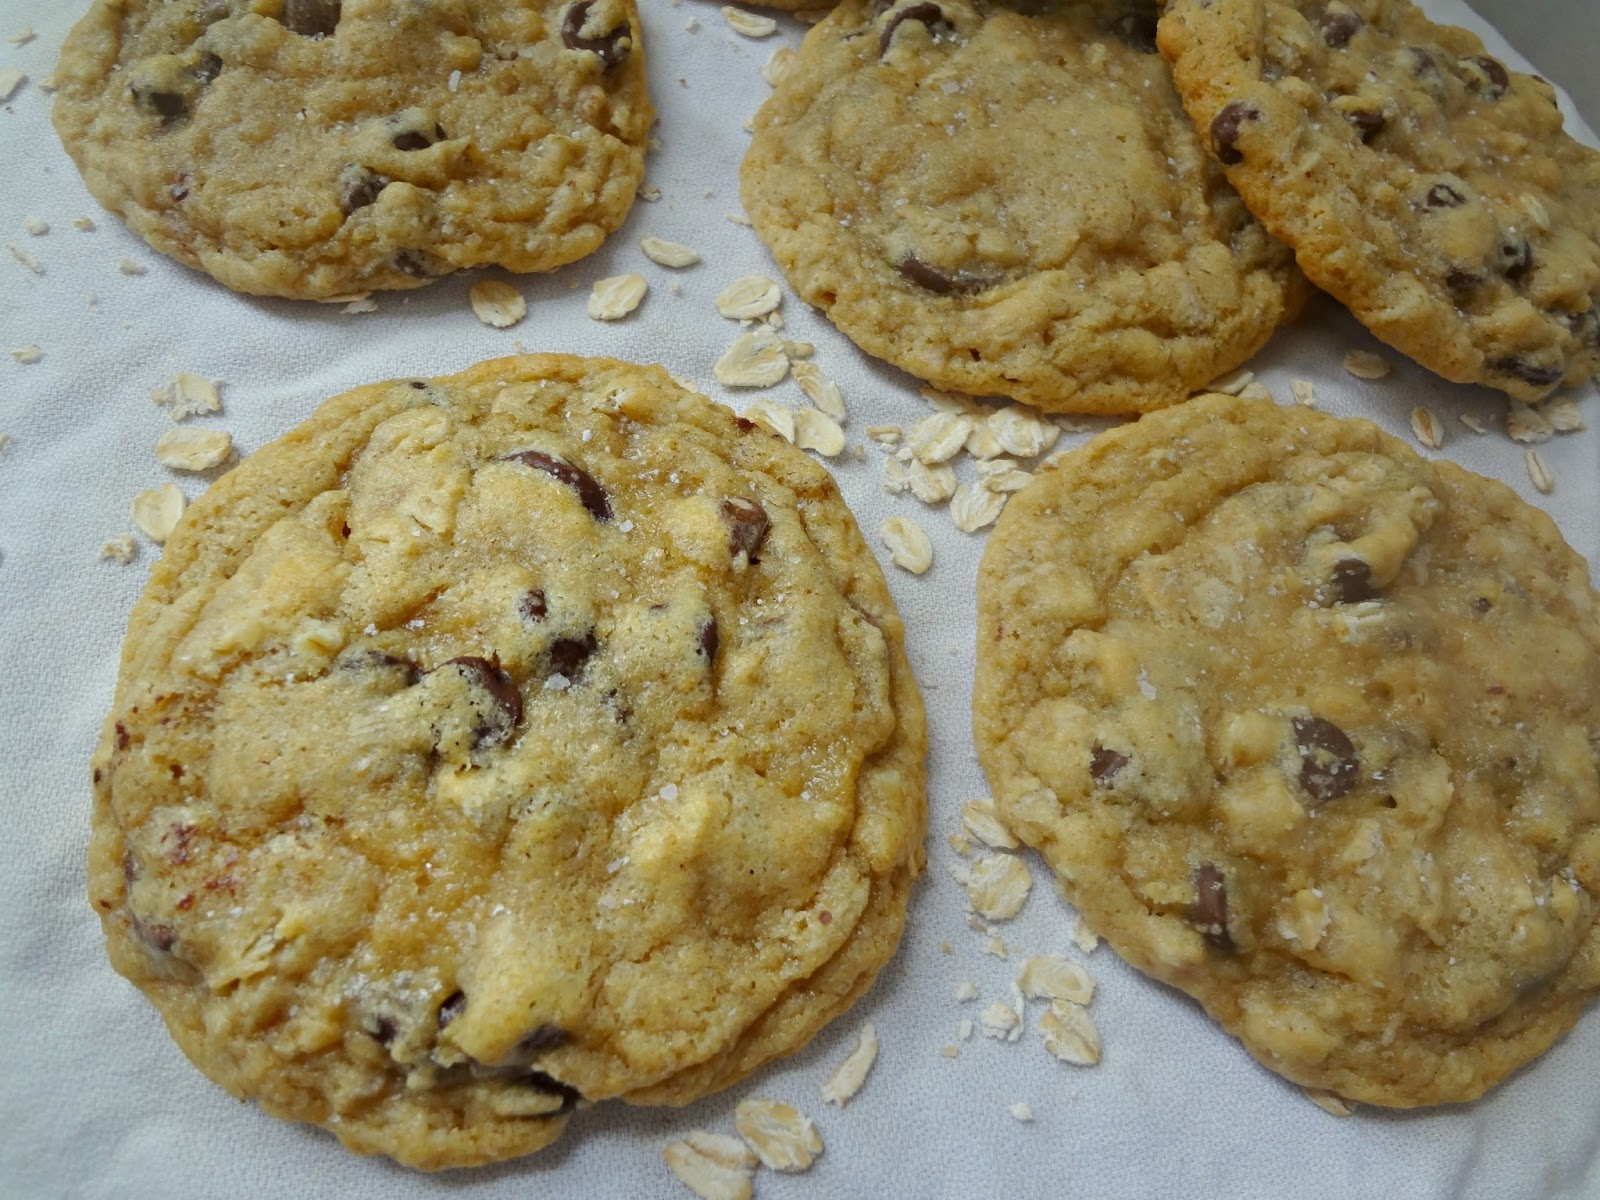 ... Cooking Actress: Whole Wheat Chocolate Chip Cookies with @ZulkaSugar